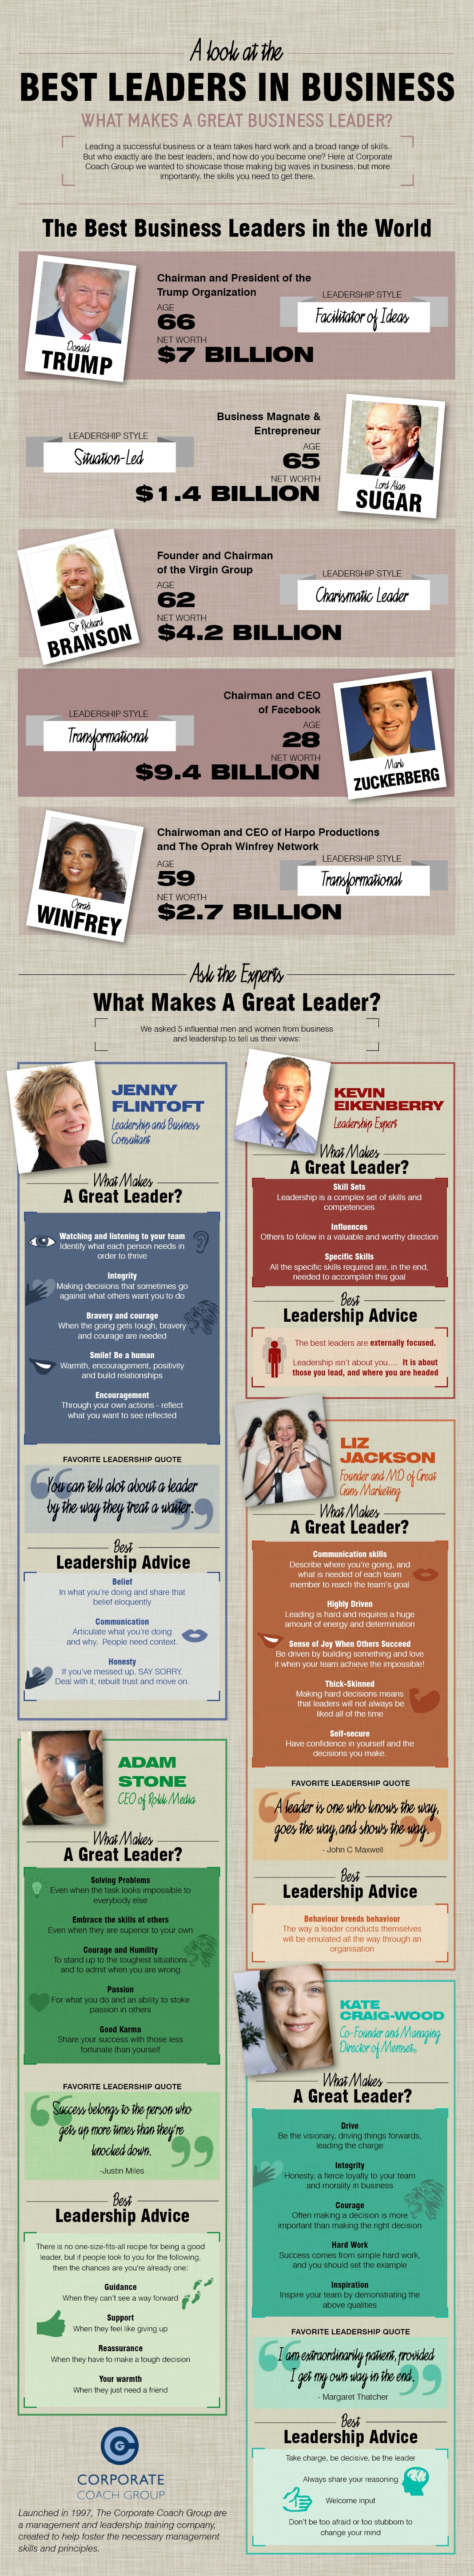 Insight Into How To Become A Leader In Business [Infographic]